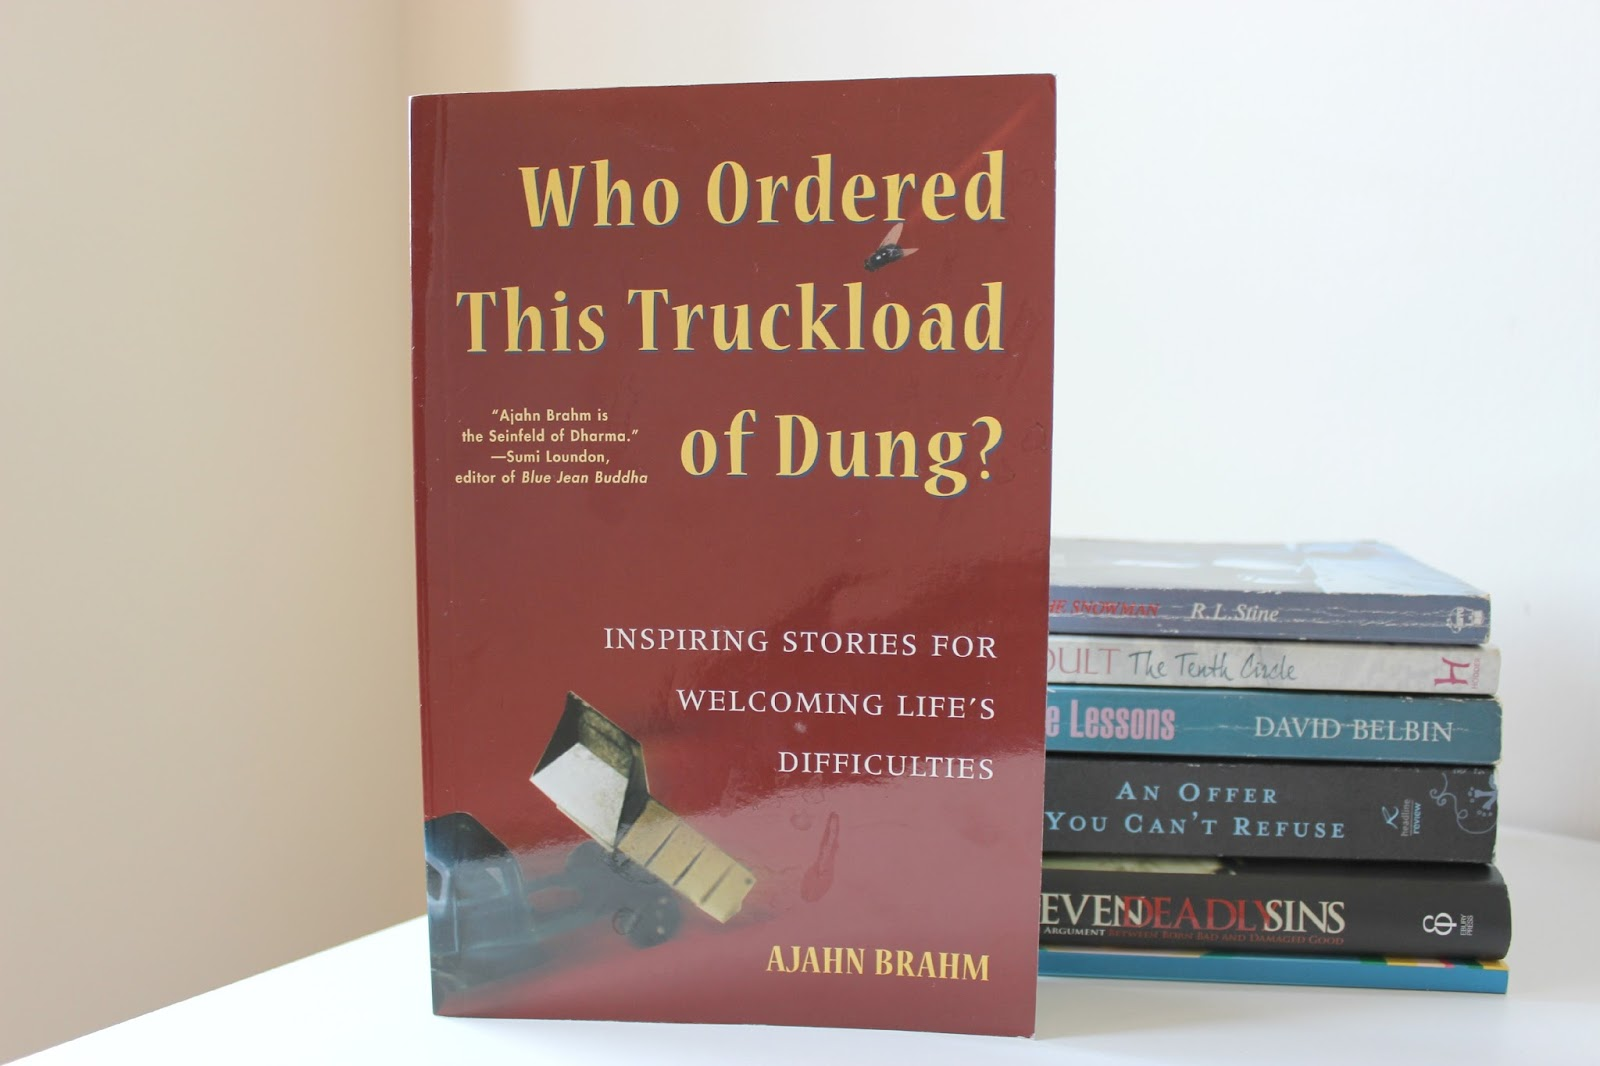 A picture of Who Ordered This Truckload of Dung? Inspiring Stories for Welcoming Life's Difficulties by Ajahn Brahm